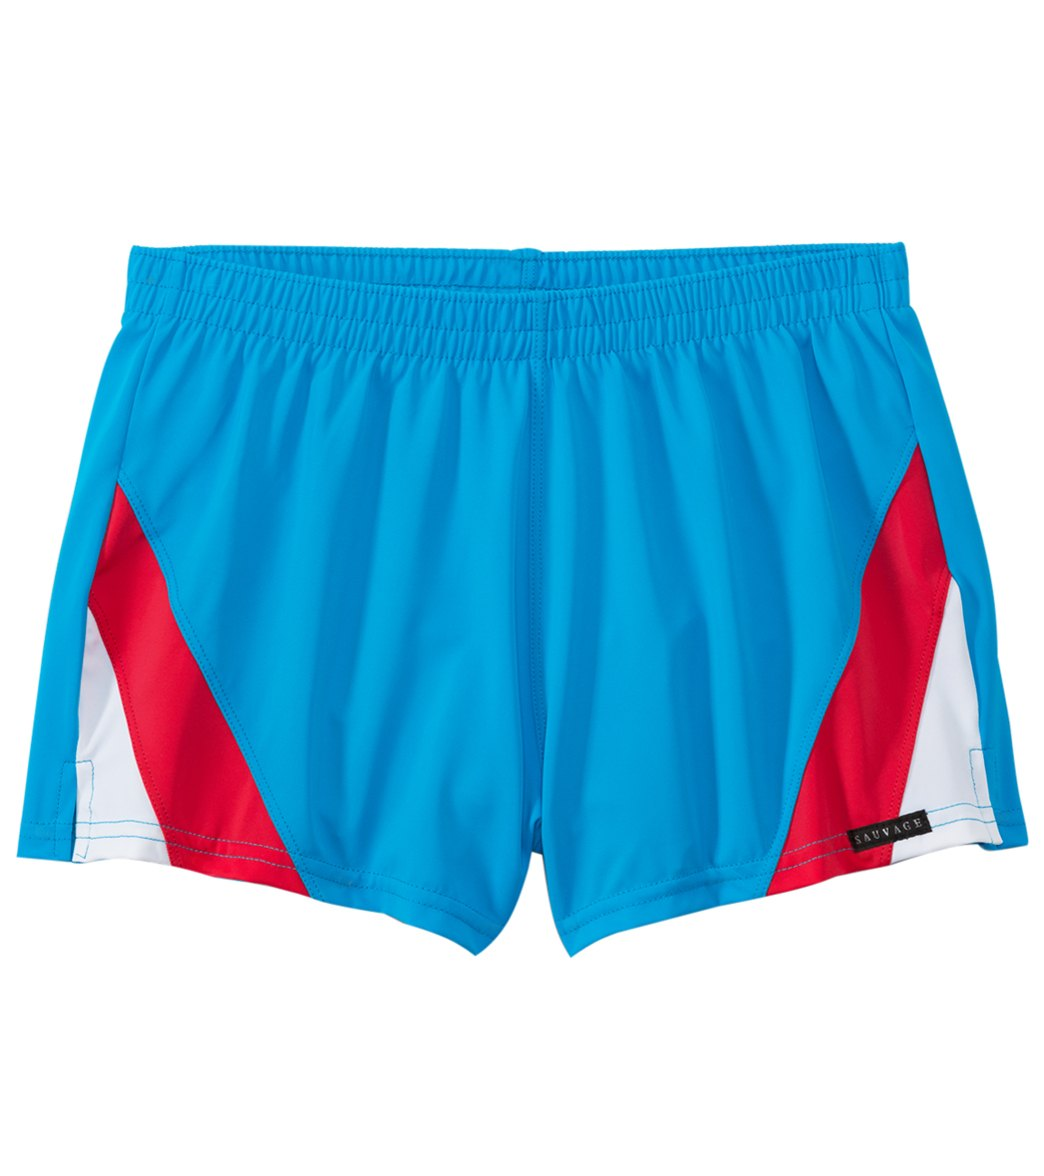 c1e91c0b27 Sauvage Retro Colorblock Swim Shorts at SwimOutlet.com - Free ...